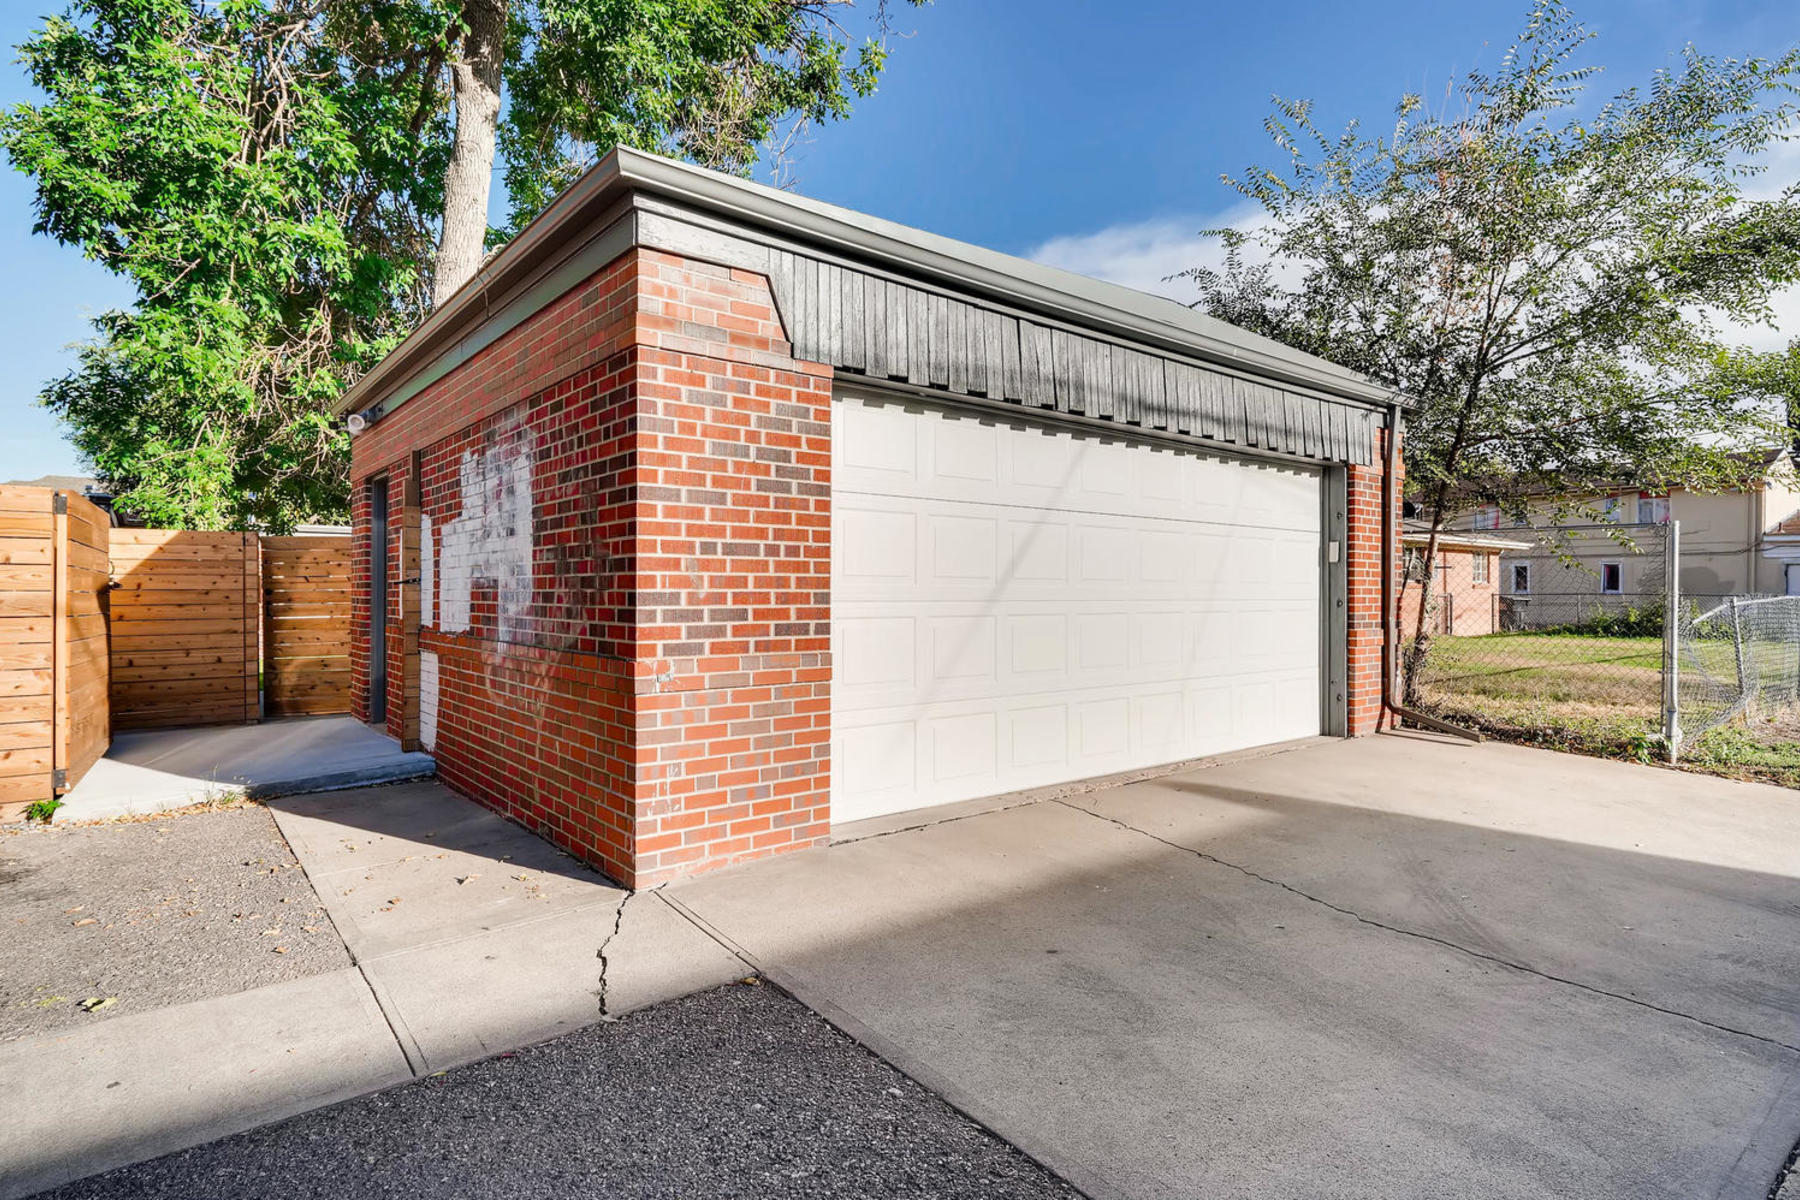 Additional photo for property listing at Stunning Home In Small Enclave 1531 Wabash St Denver, Colorado 80220 United States